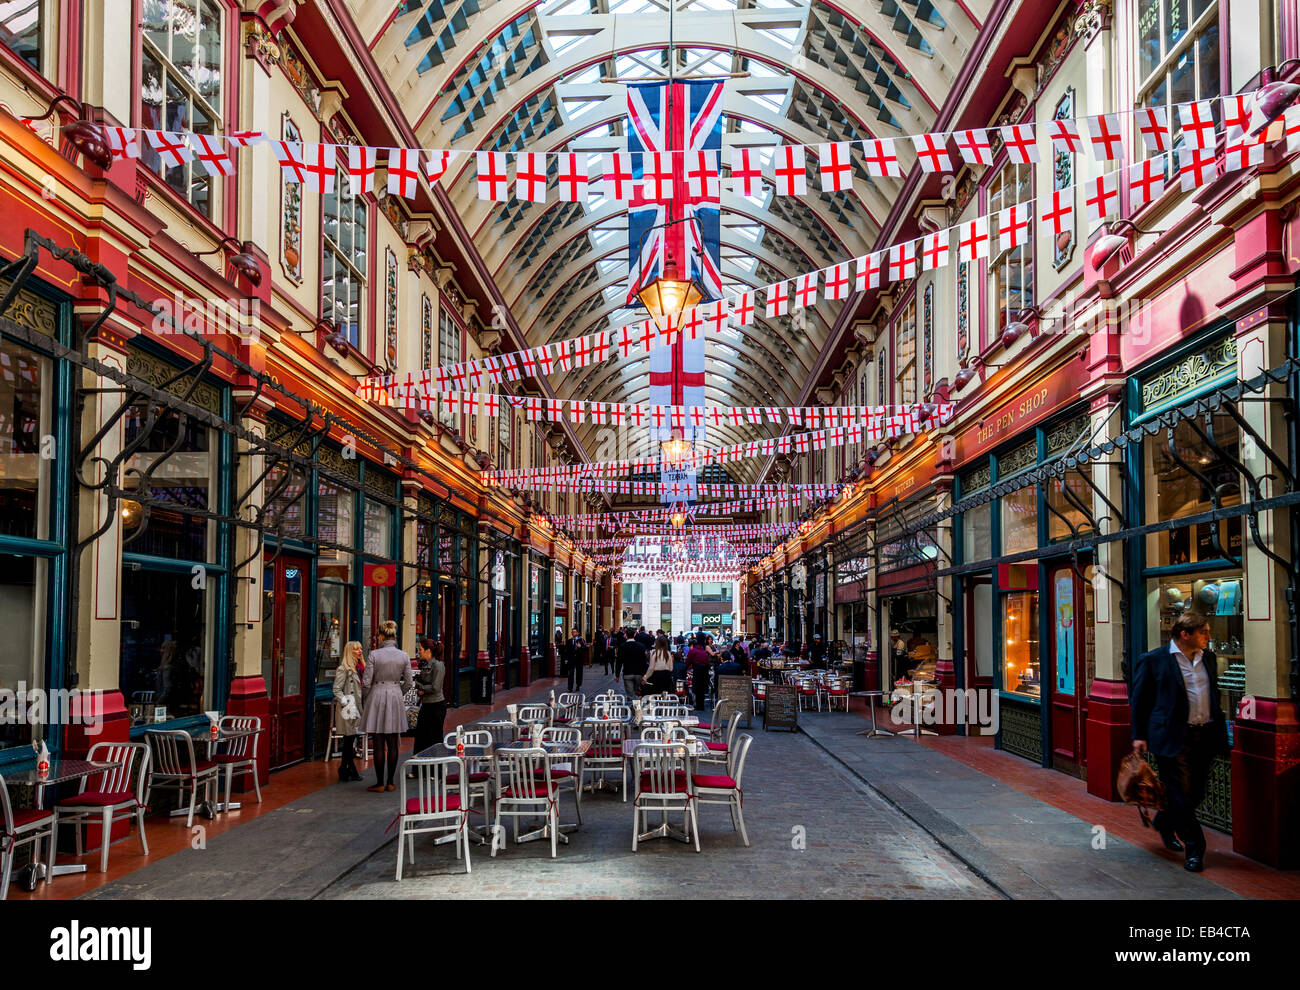 Leadenhall Market is a covered market in London, located on Gracechurch Street, City of London. - Stock Image